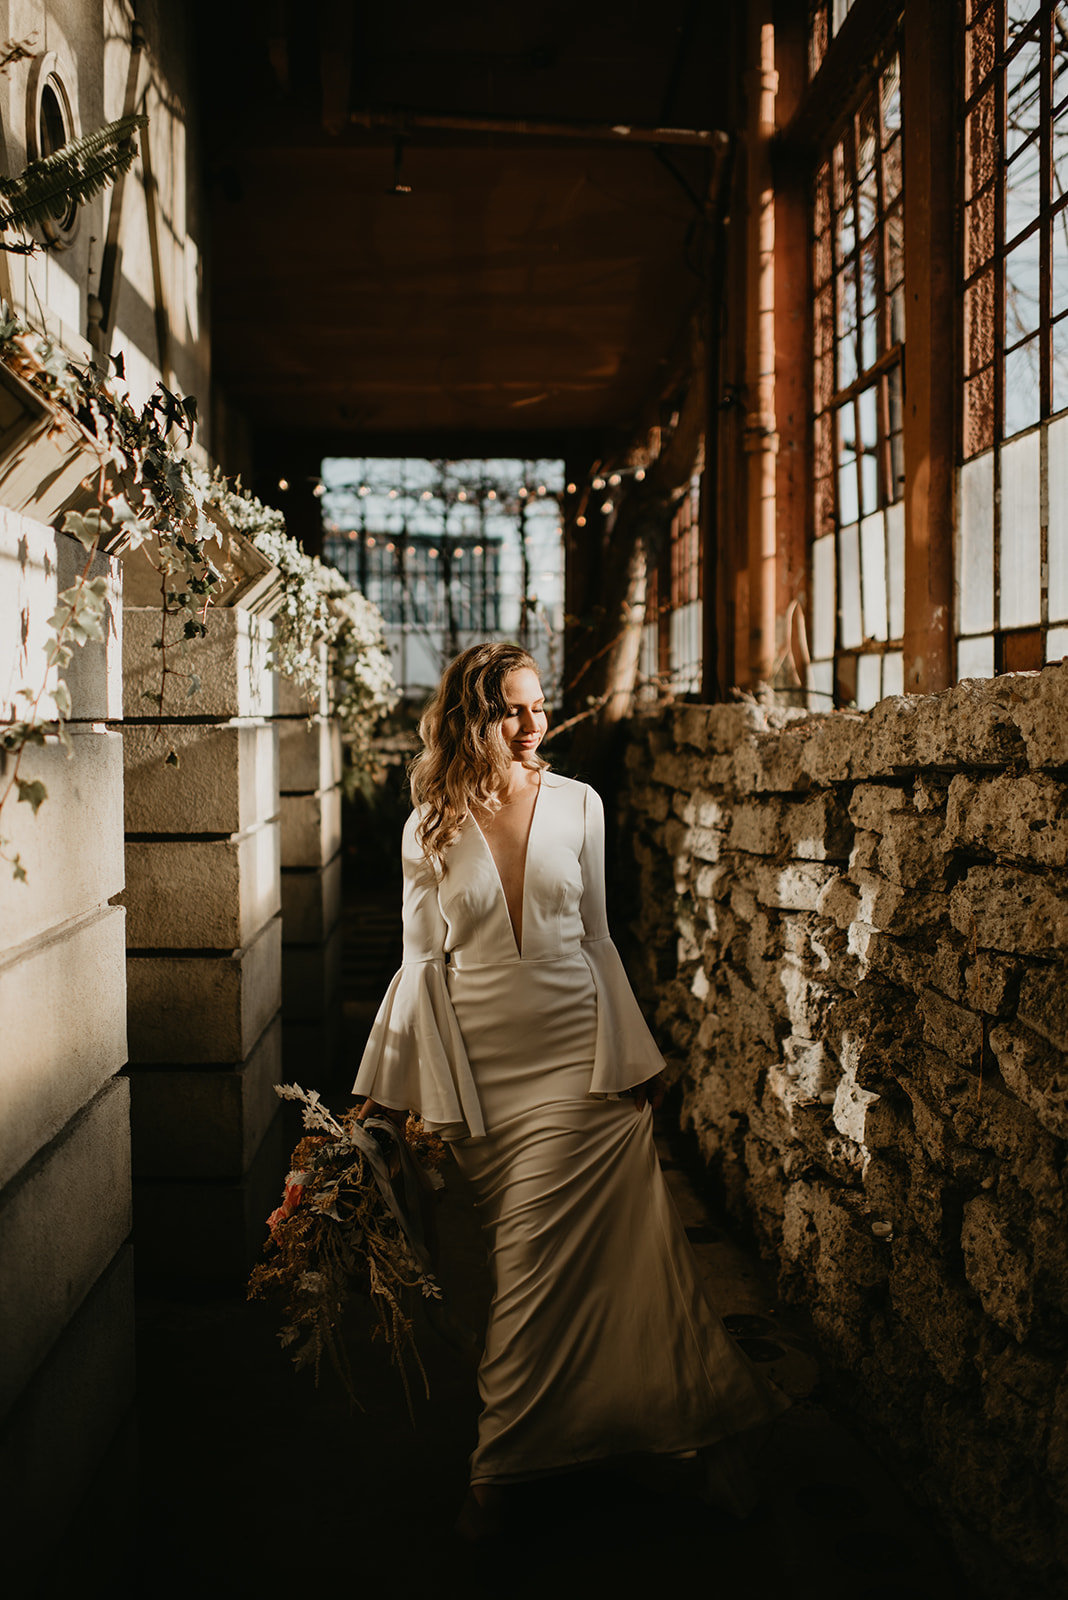 Britty + Beau - Elopement - The Ruins_ Seattle_ WA - Kamra Fuller Photography - Runaway With Me Elopement Collective-137